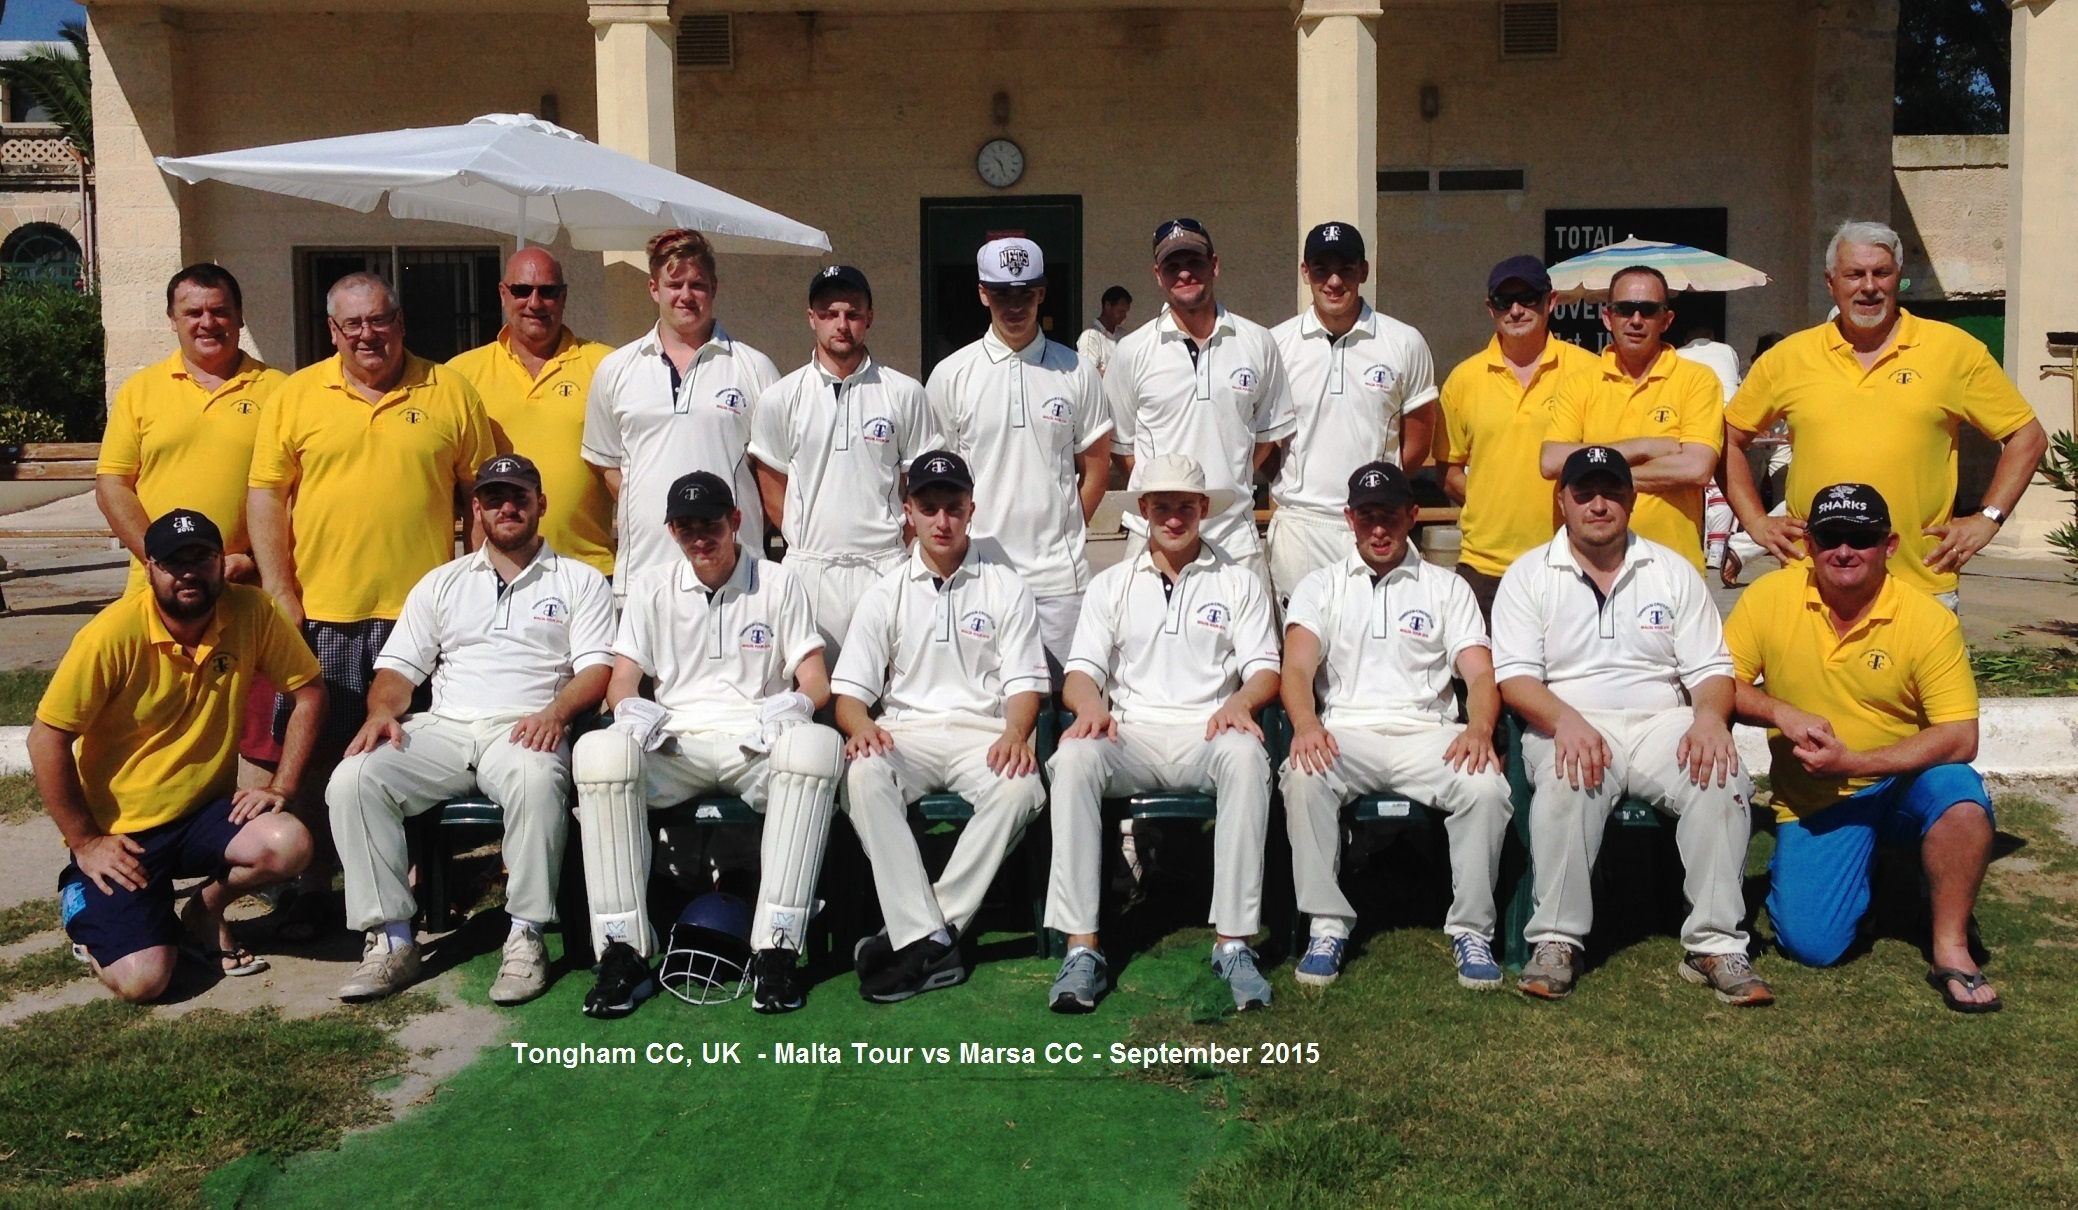 Tongham CC - Malta Cricket Tour - Sept 2015